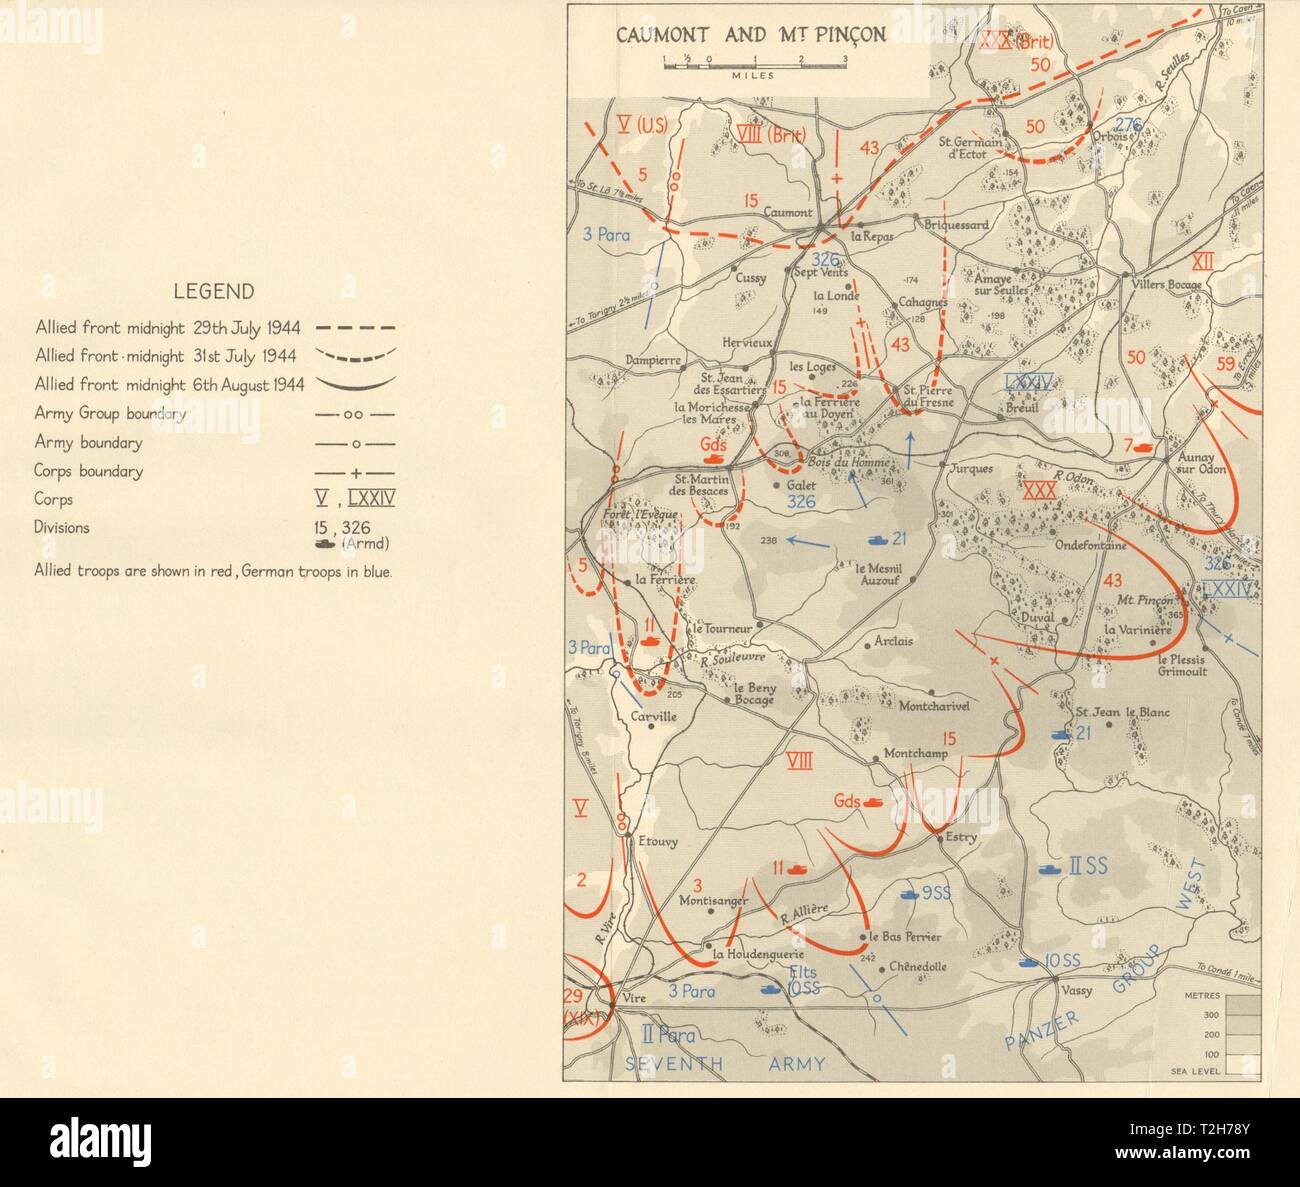 Operation Bluecoat. Caumont & Mt. Pinçon 29 July-6 August 1944 Normandy 1962 map - Stock Image